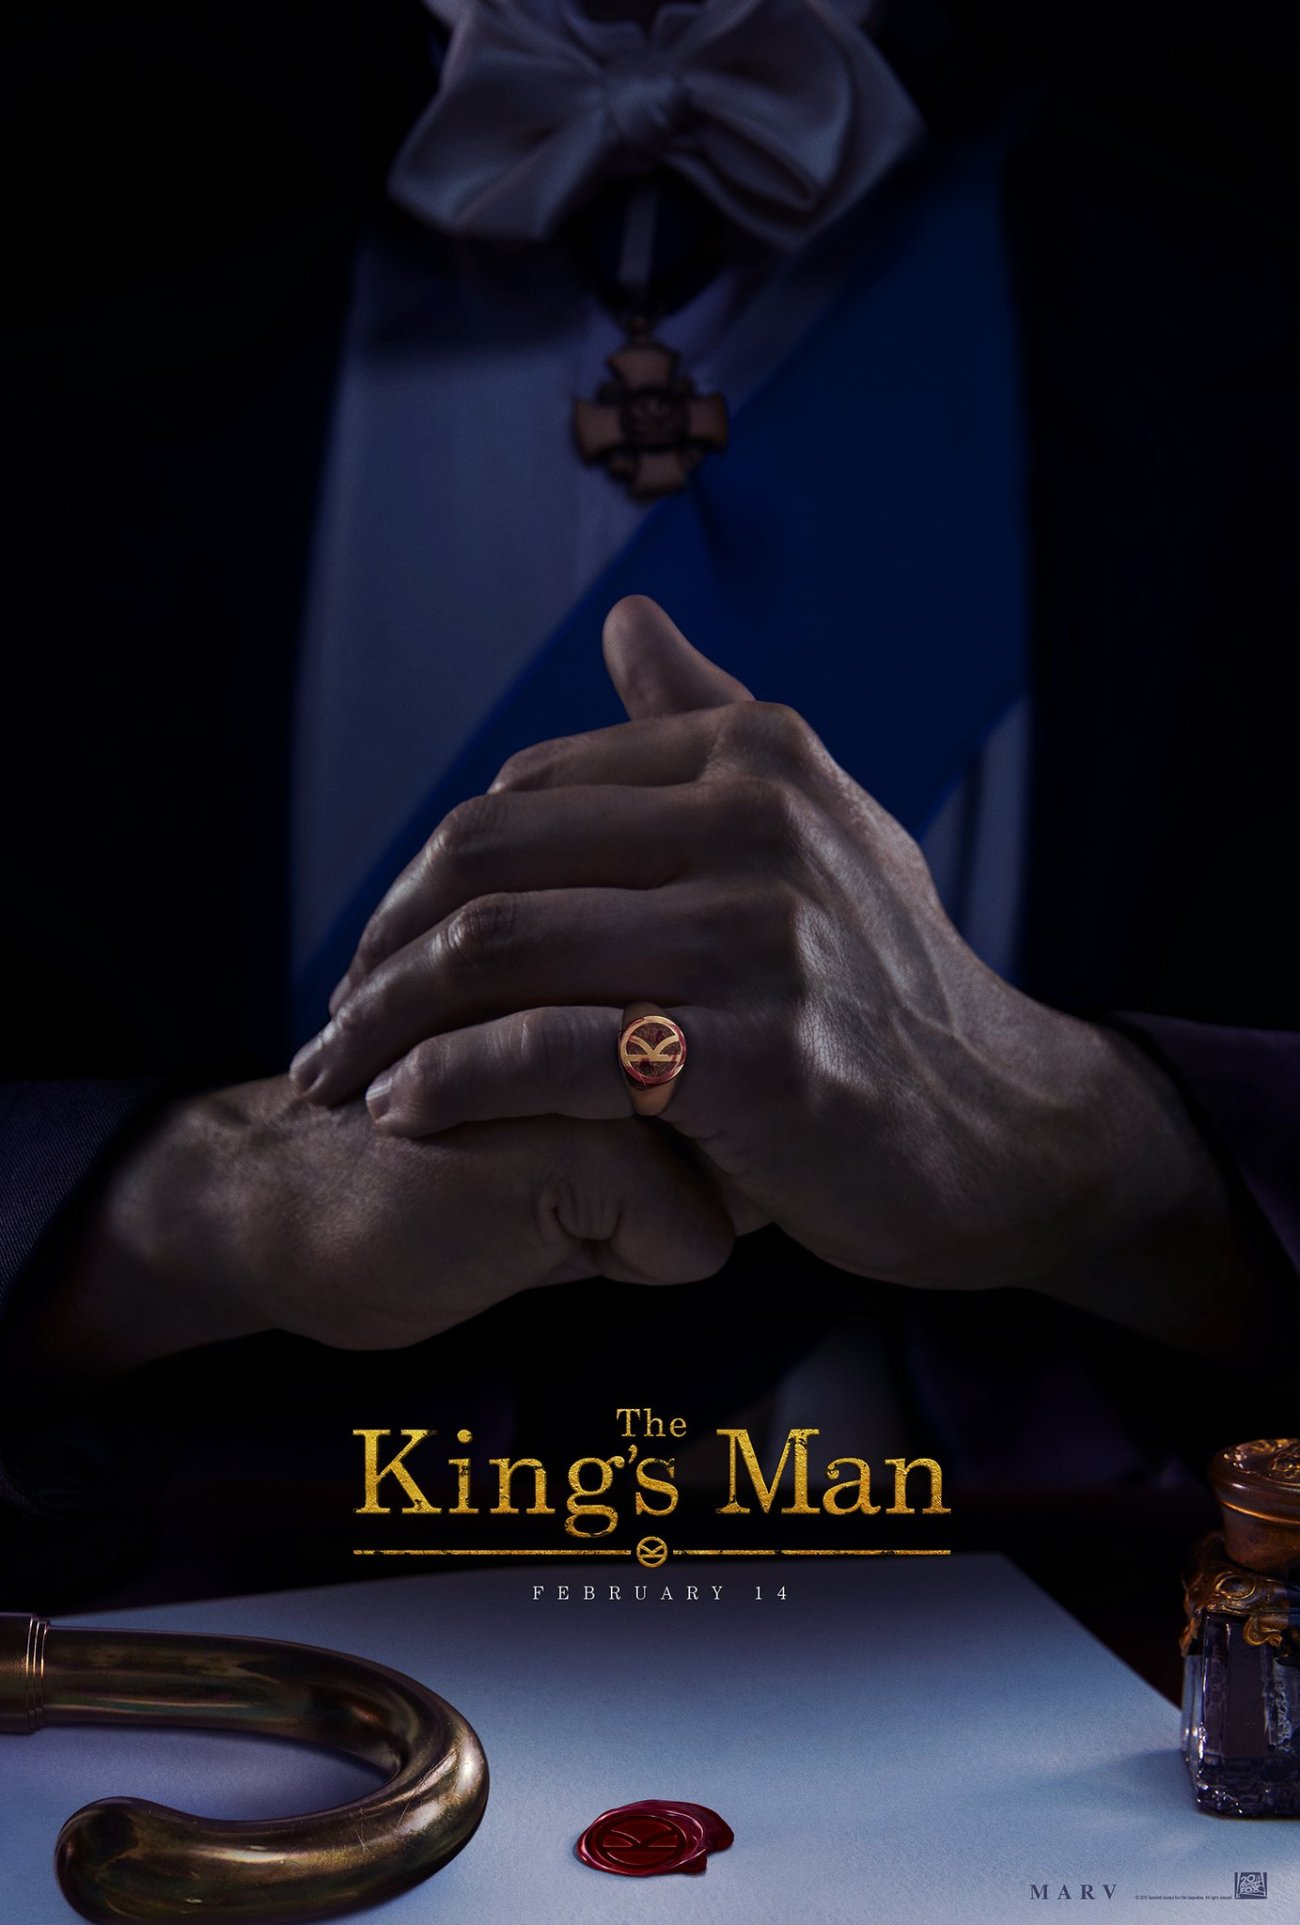 thekingsman-cliff-and-co